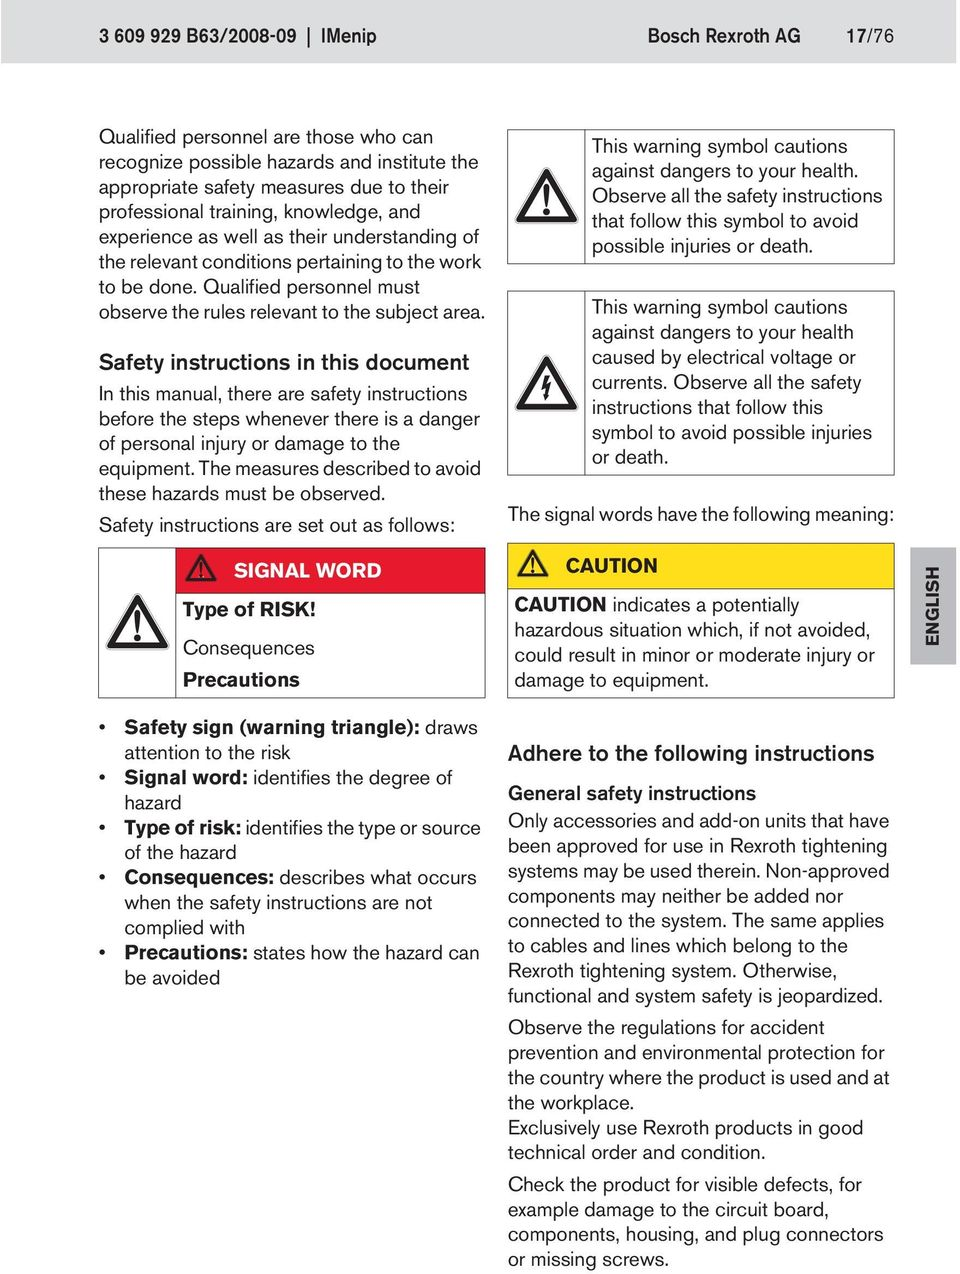 Safety instructions in this document In this manual, there are safety instructions before the steps whenever there is a danger of personal injury or damage to the equipment.